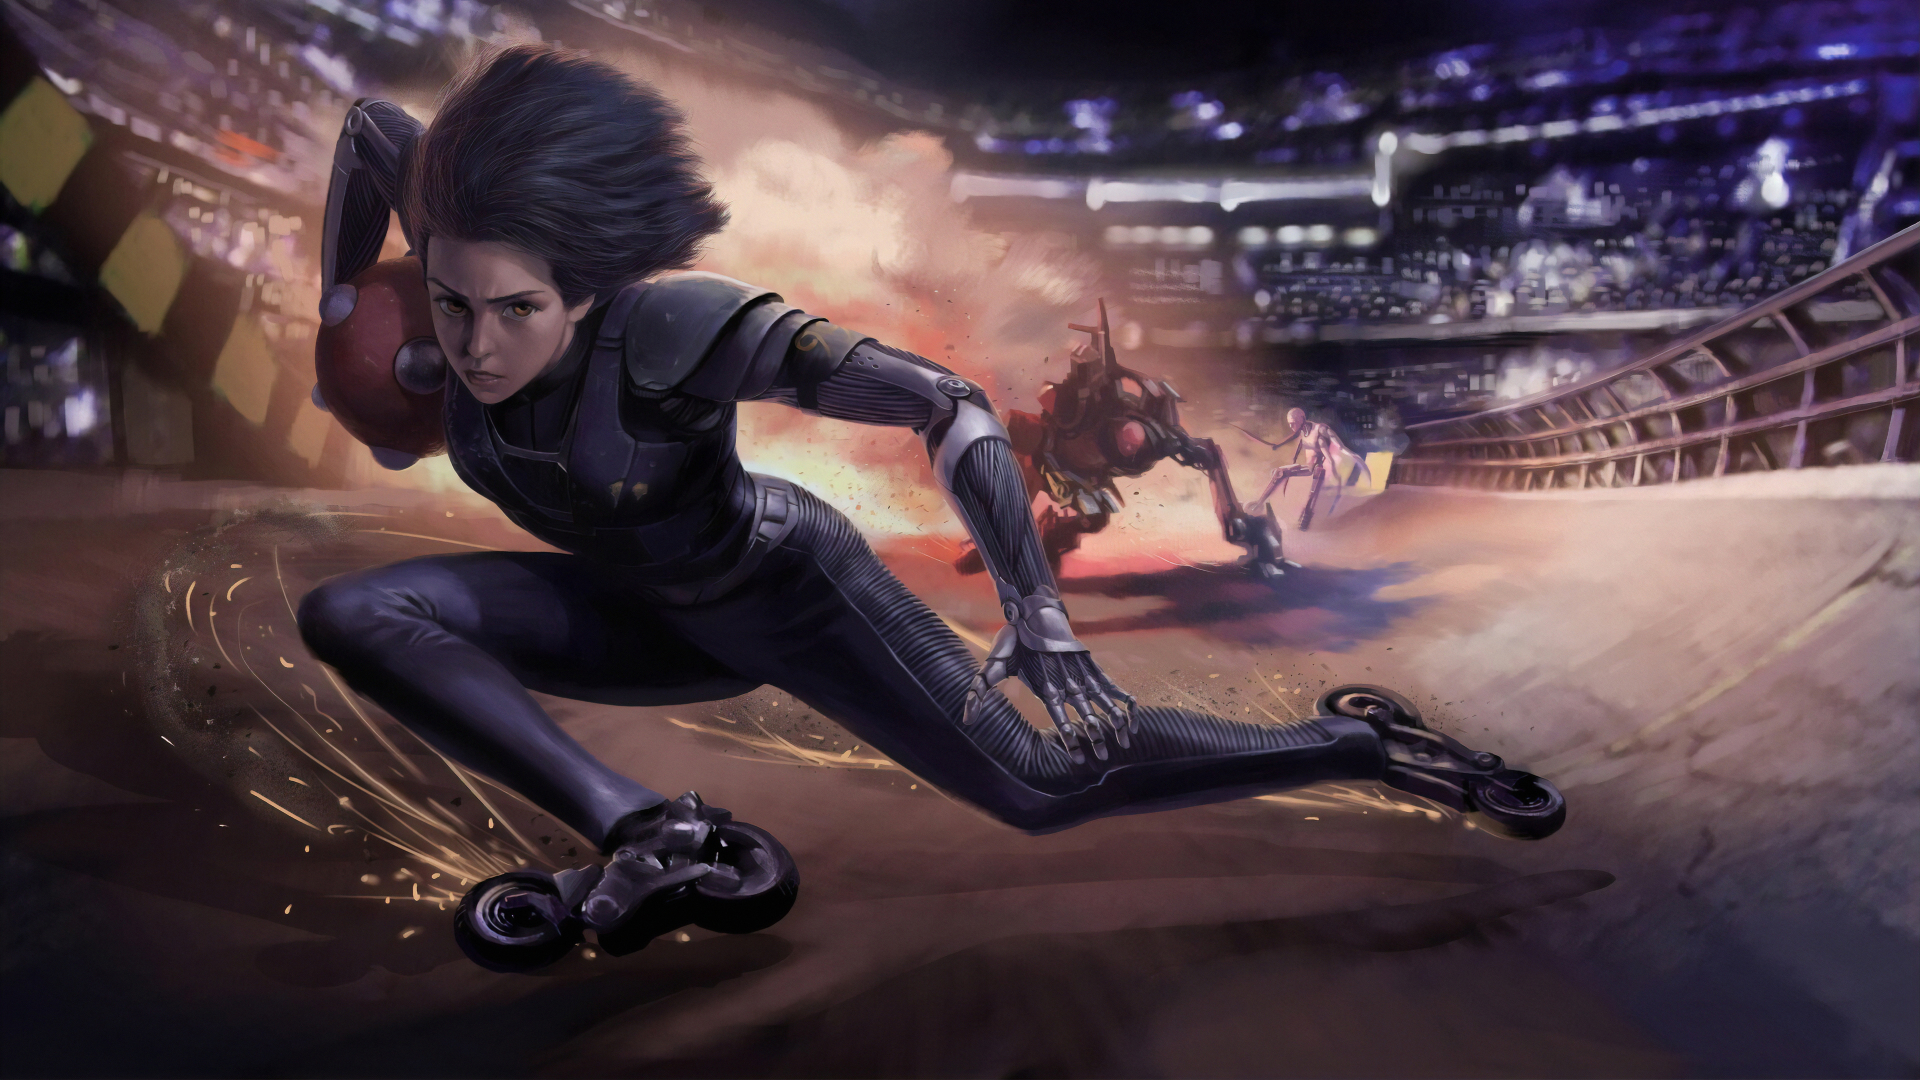 1920x1080 Alita From Battle Angel 1080p Laptop Full Hd Wallpaper